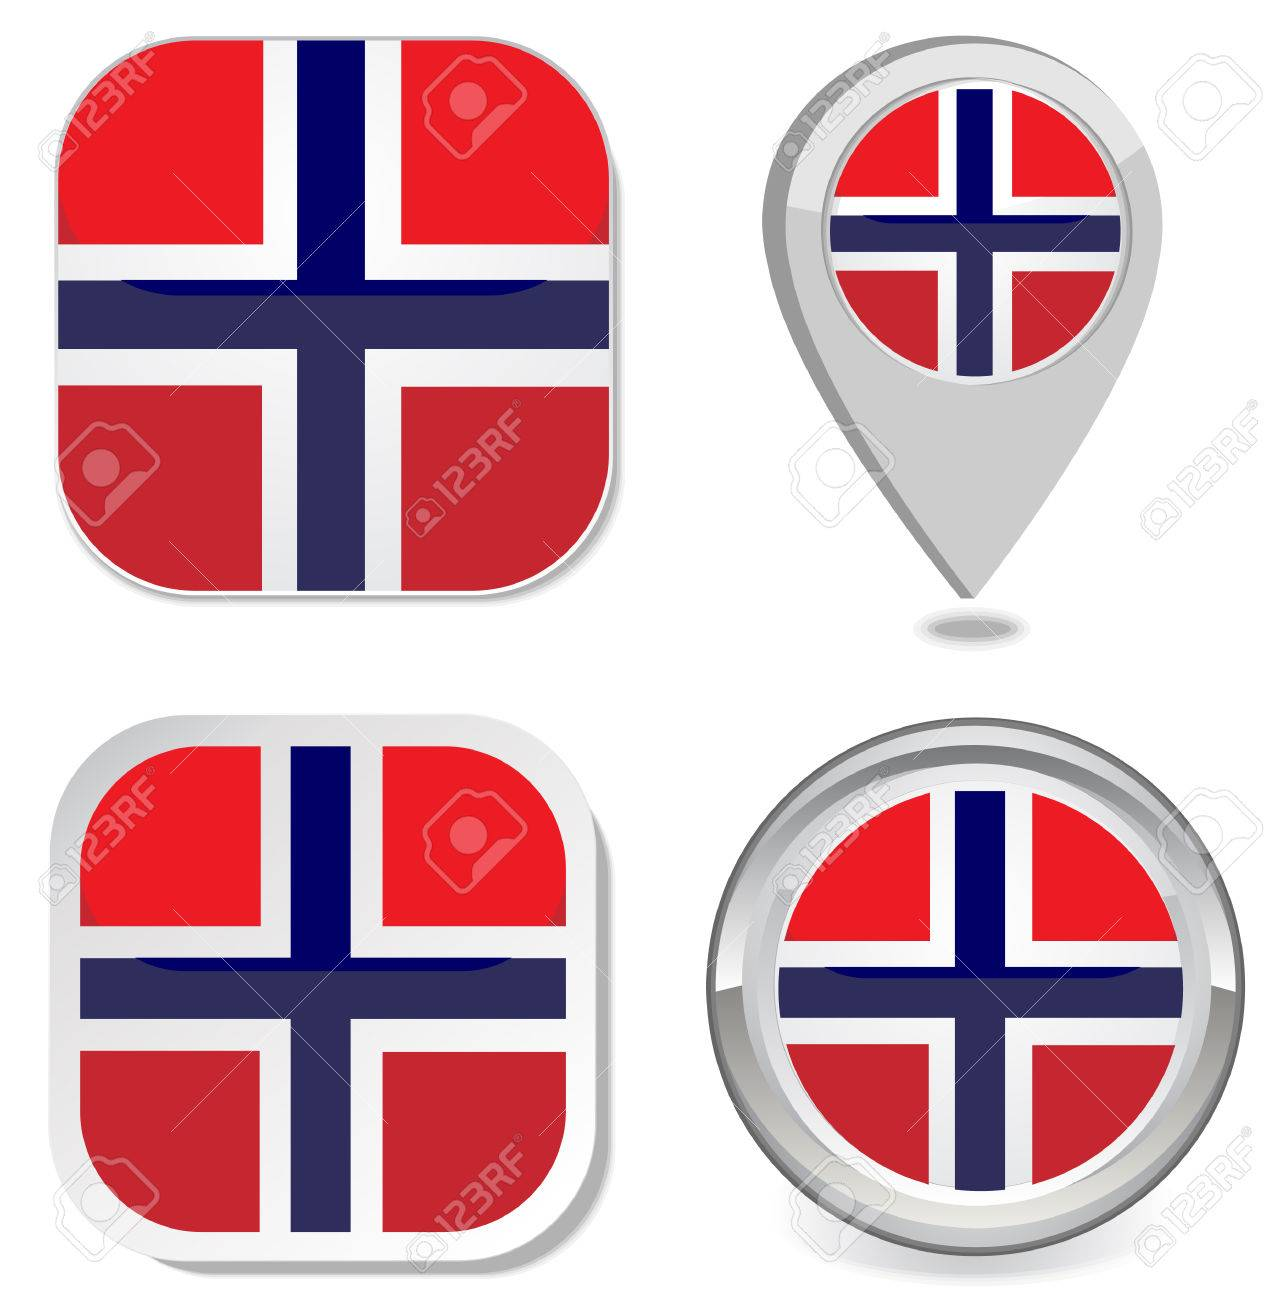 Grunge Norway Flag Icon Sticker Button Map Point Marker Vector - Norway map eps